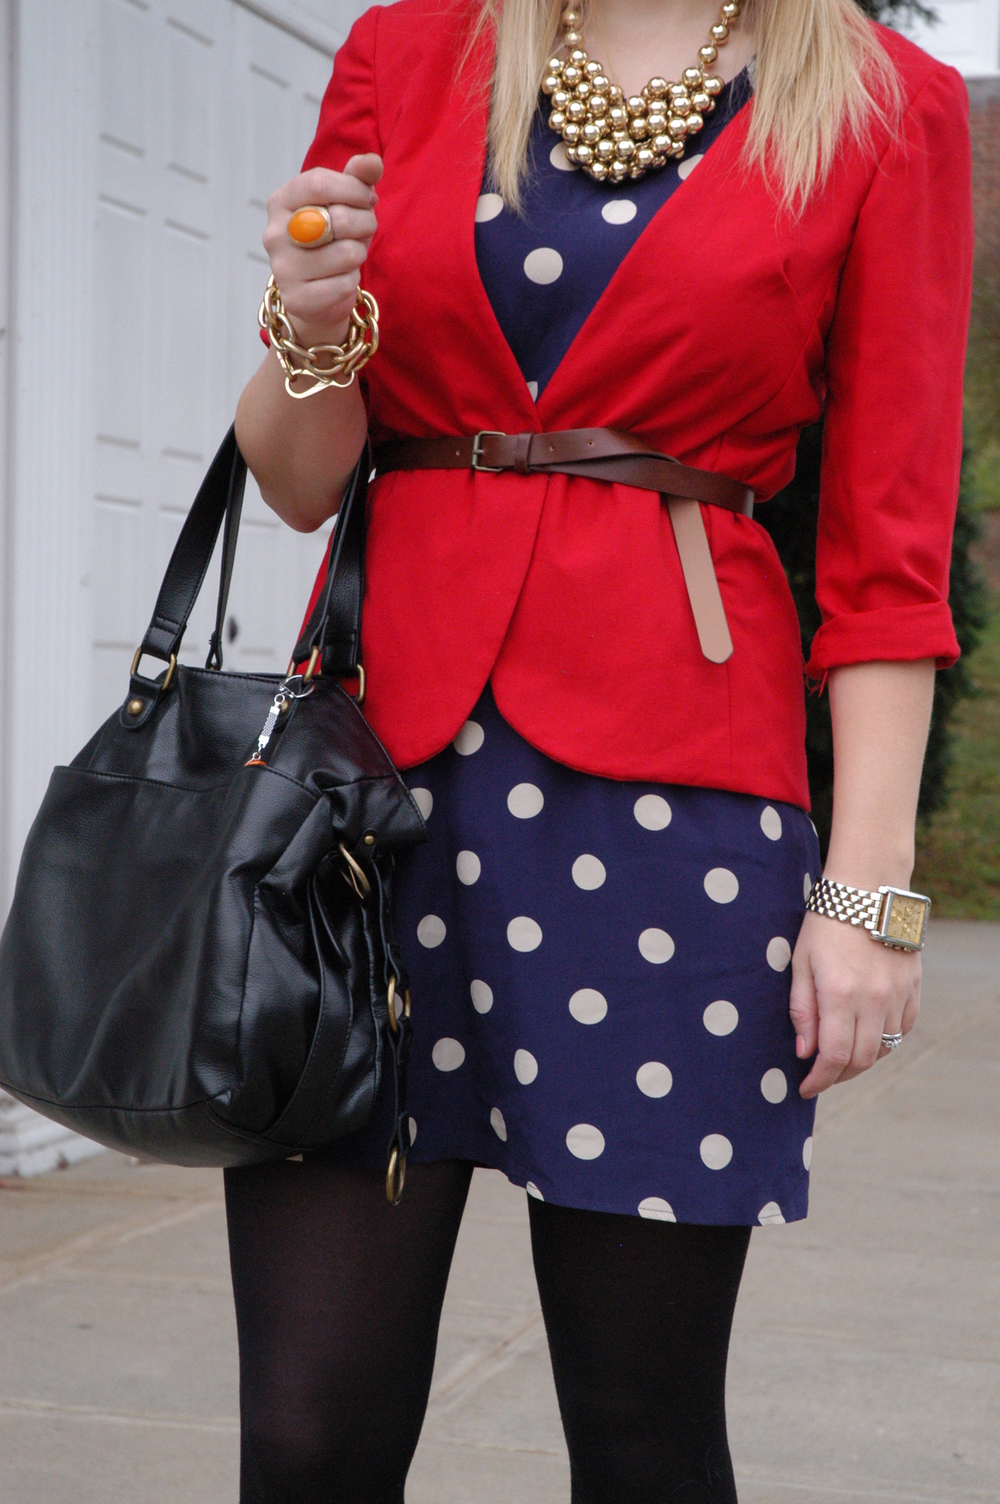 Dress:  Madewell  | Blazer: Handmade ( Cynthia Rowley Simplicity Pattern #2250 ) | Tights: Merona, Target | Shoes: Dolce Vita via TjMaxx | Purse: Target | Jewelry: Joann Fabrics, H&M, Belk | Belt: H&M | Shades: H&M